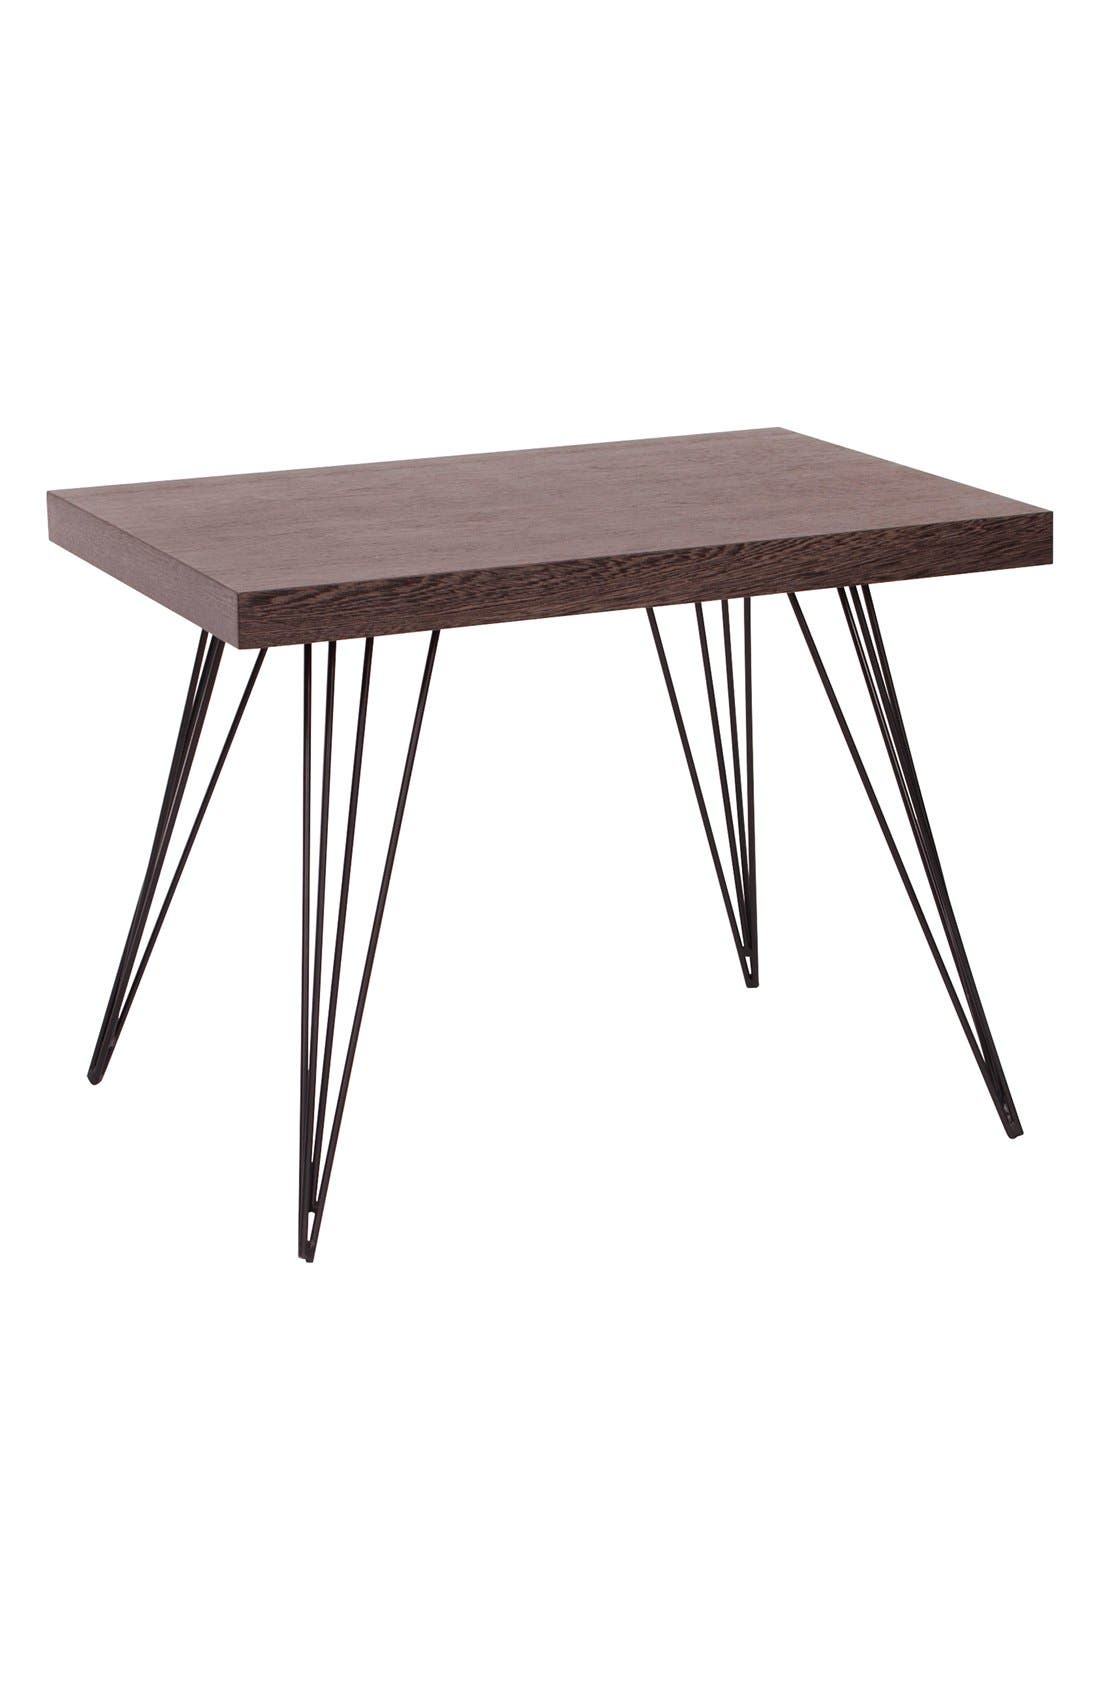 Alternate Image 1 Selected - Howard Elliott Collection Black Ash & Wire Side Table